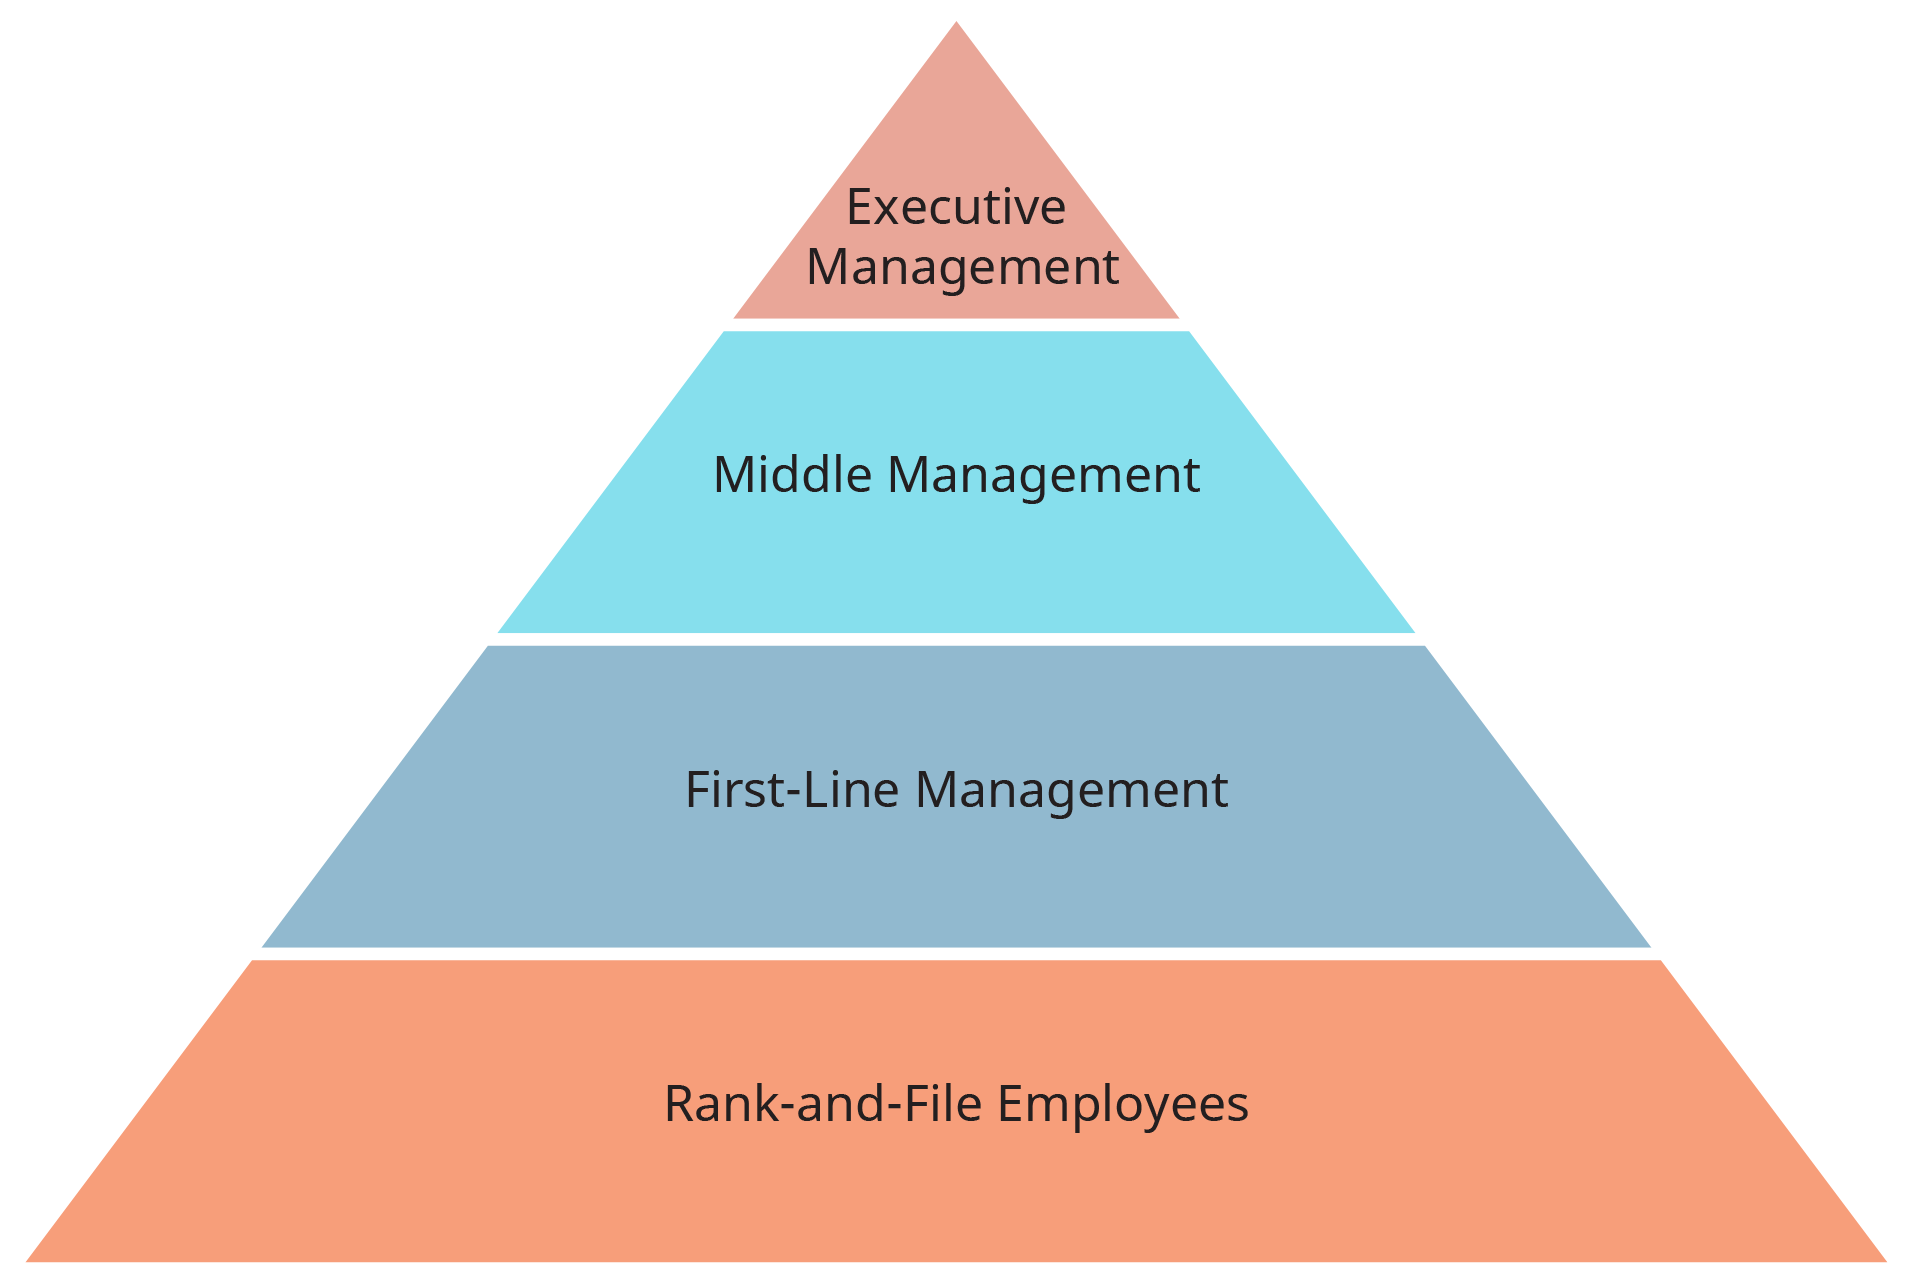 A diagram illustrates the levels in the management hierarchy, represented as a pyramid.